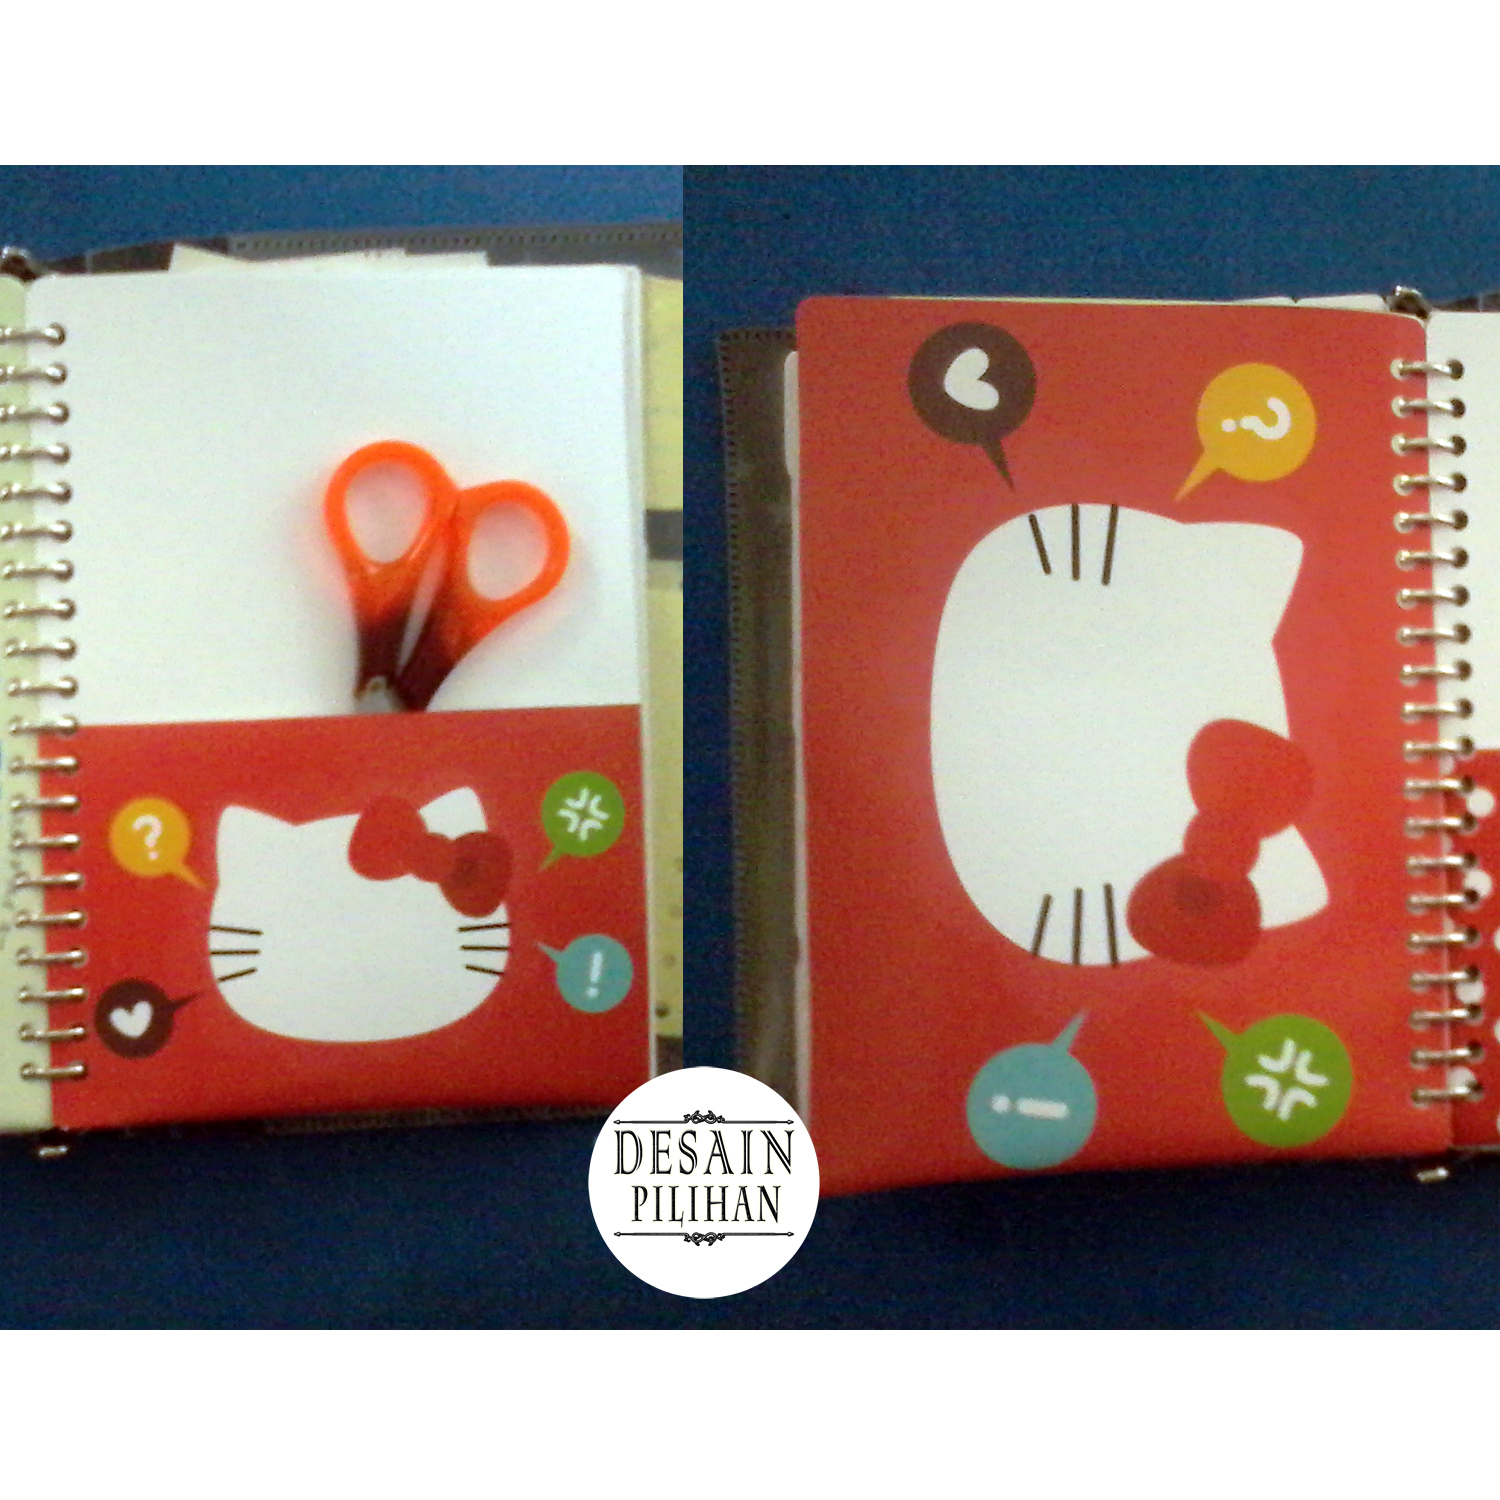 POCKET DIVIDER, KANTONG SAKU PEMBATAS BINDER CUSTOM HELLO KITTY